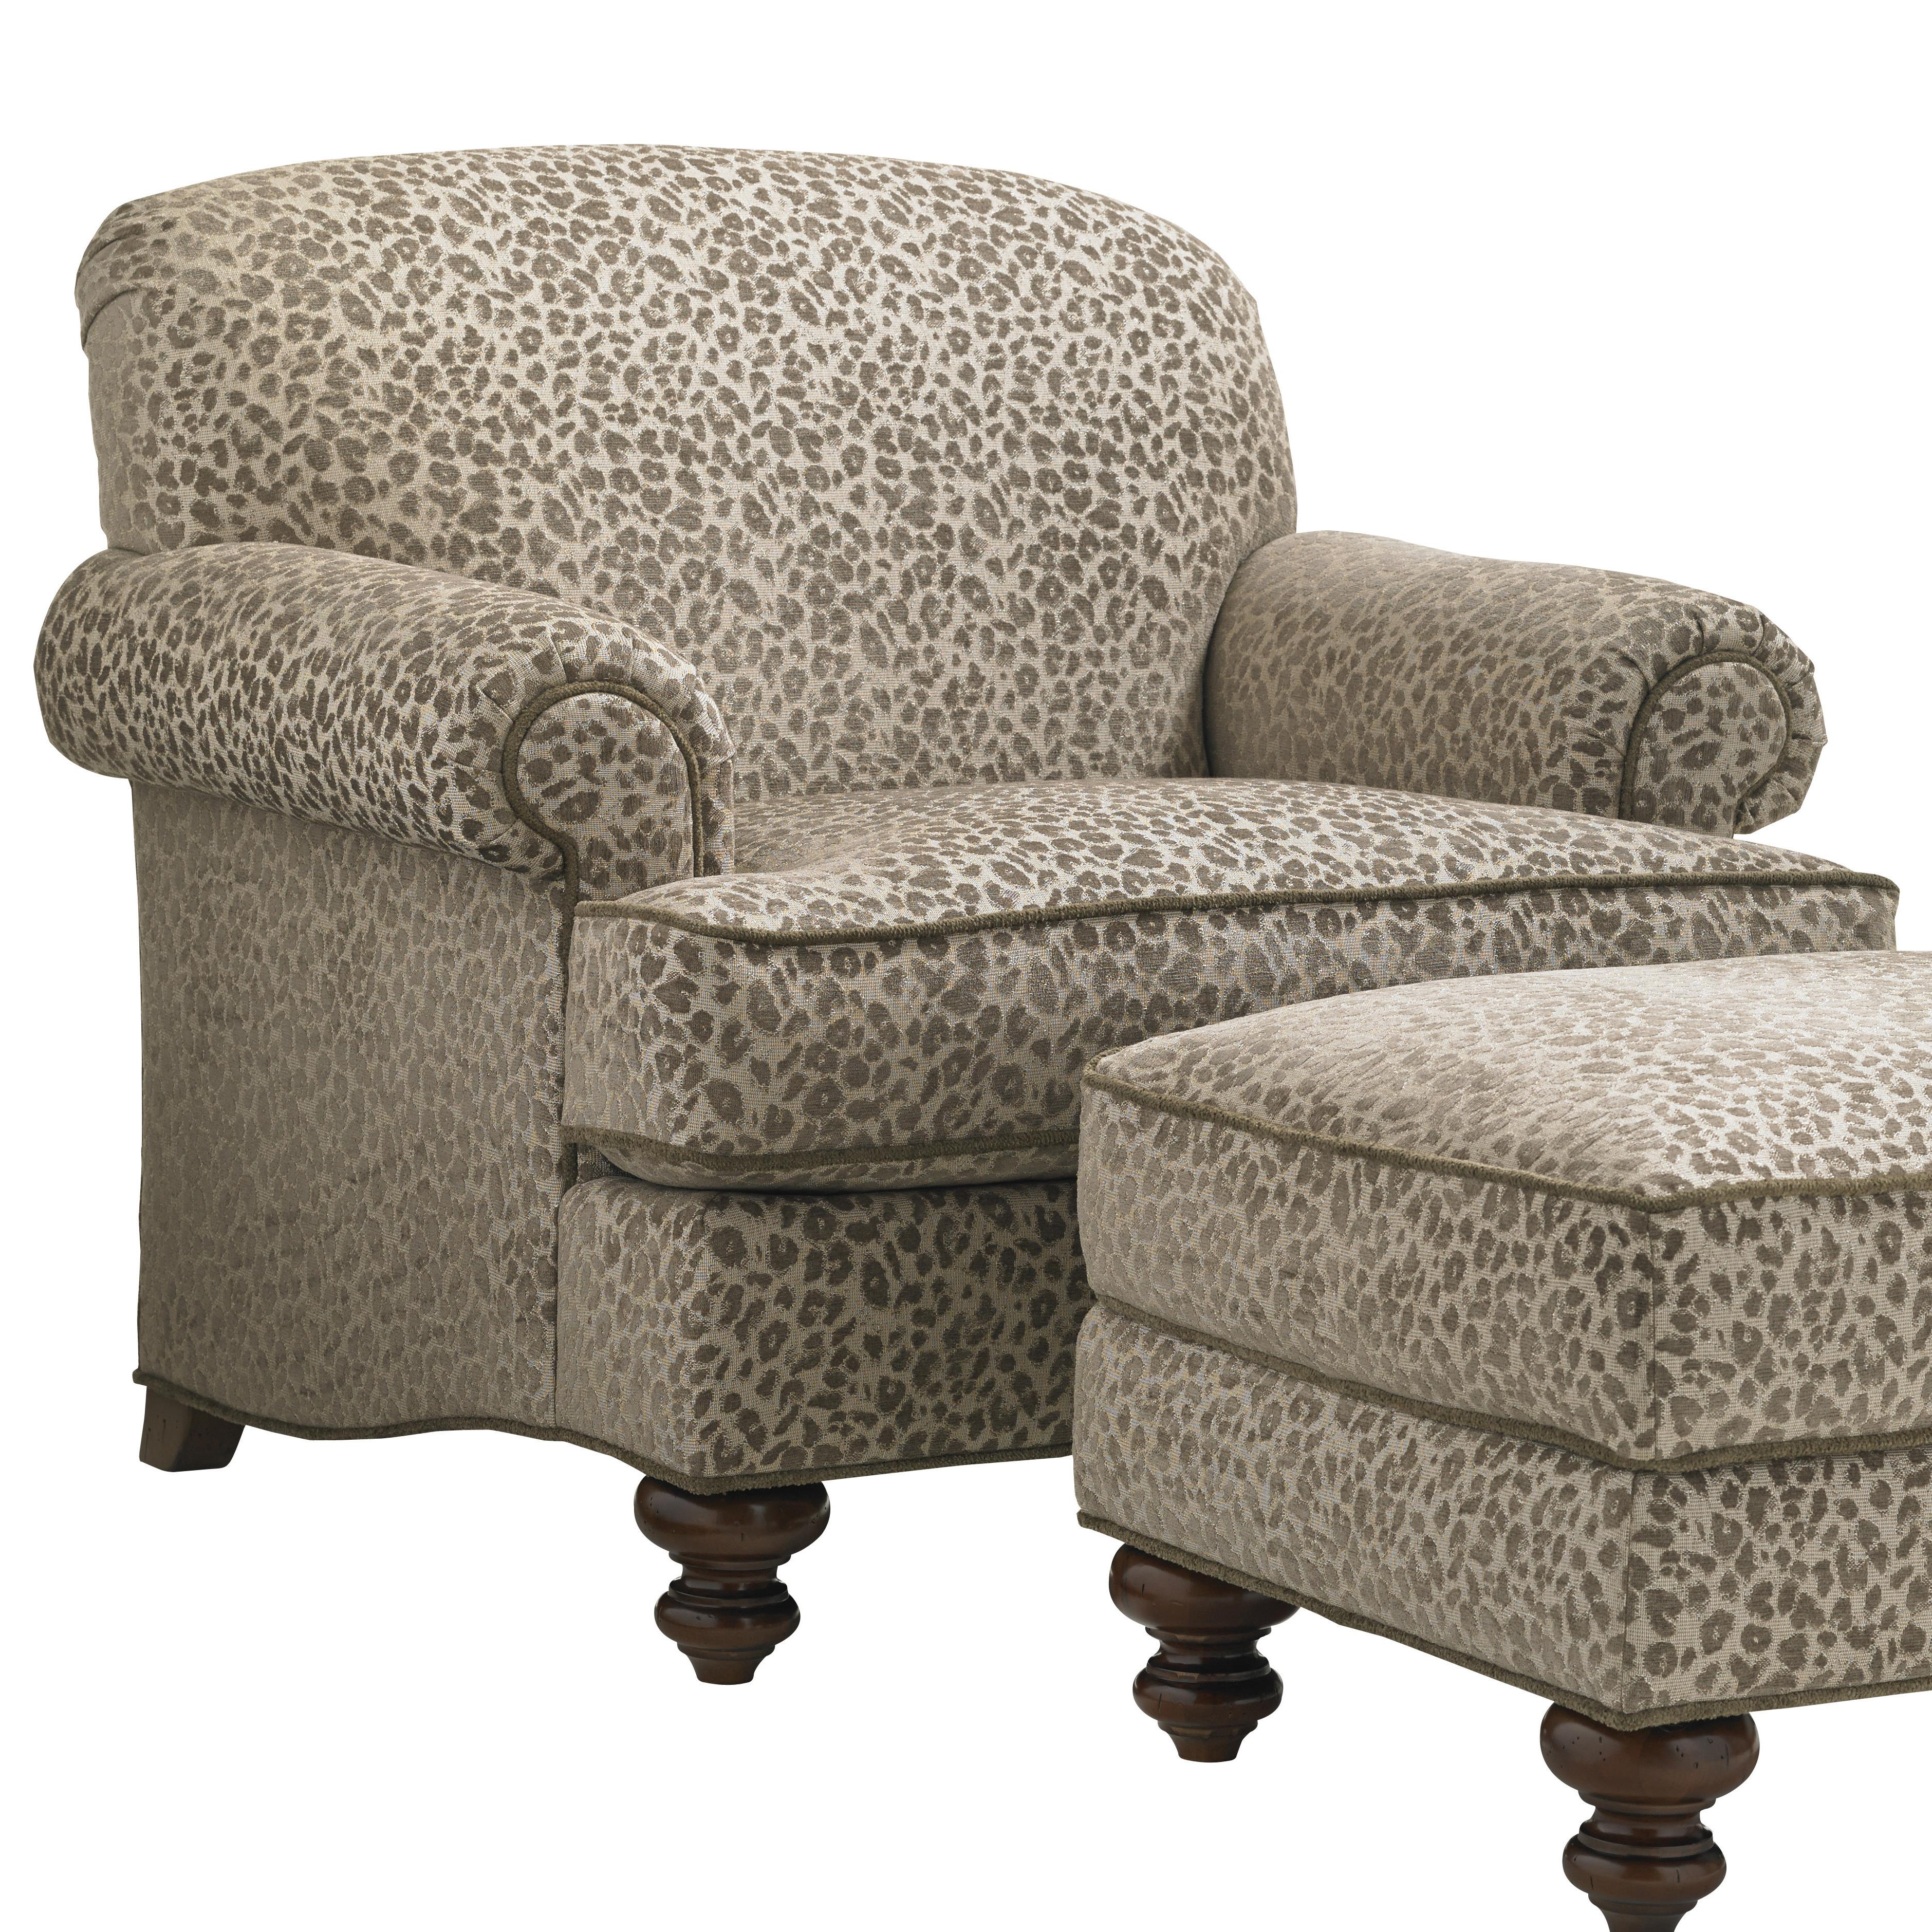 Coventry Hills Asbury Chair by Lexington at Baer's Furniture